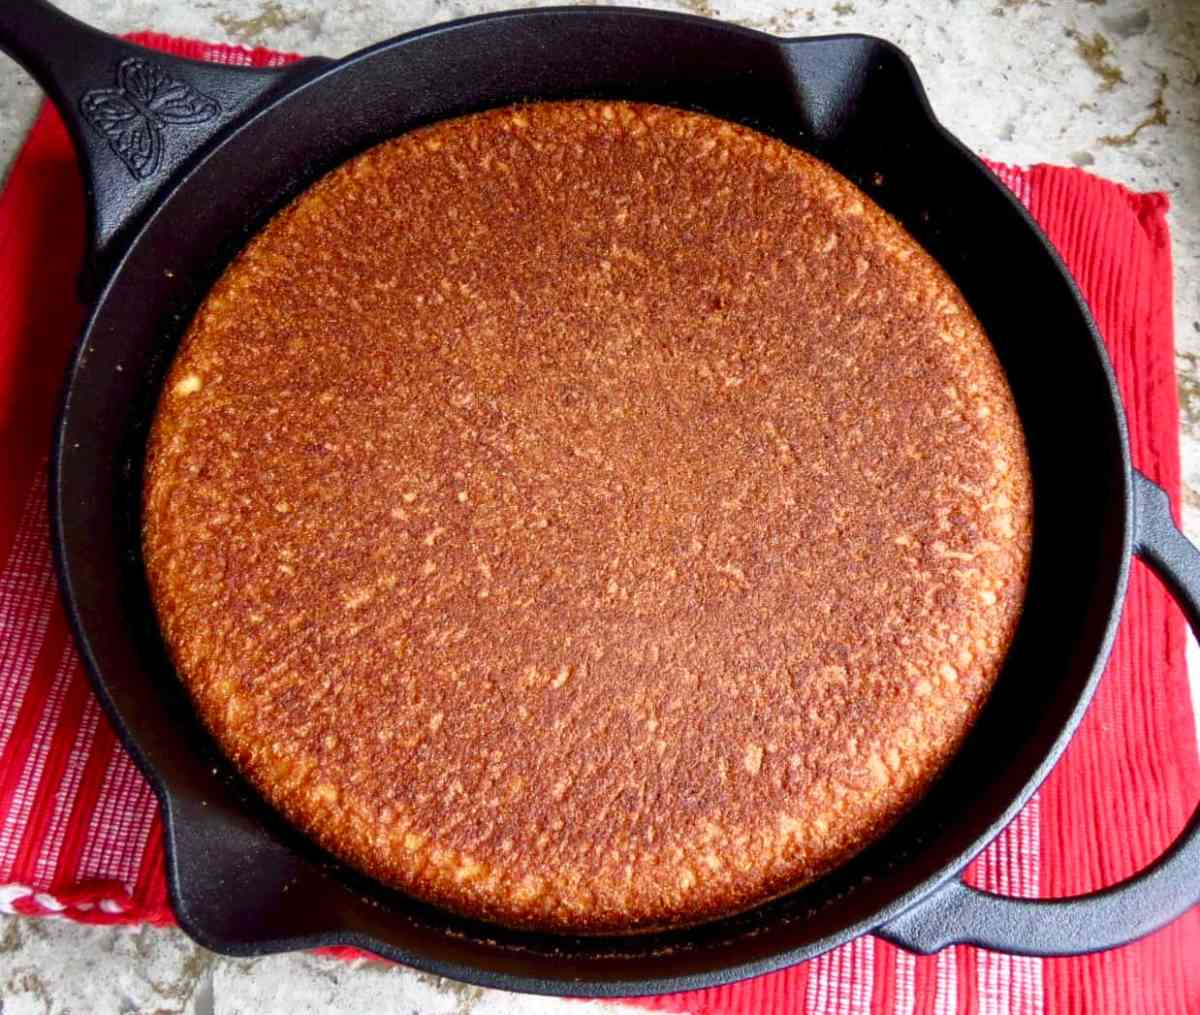 Iron Skillet Cornbread turned upside down in black iron skillet.